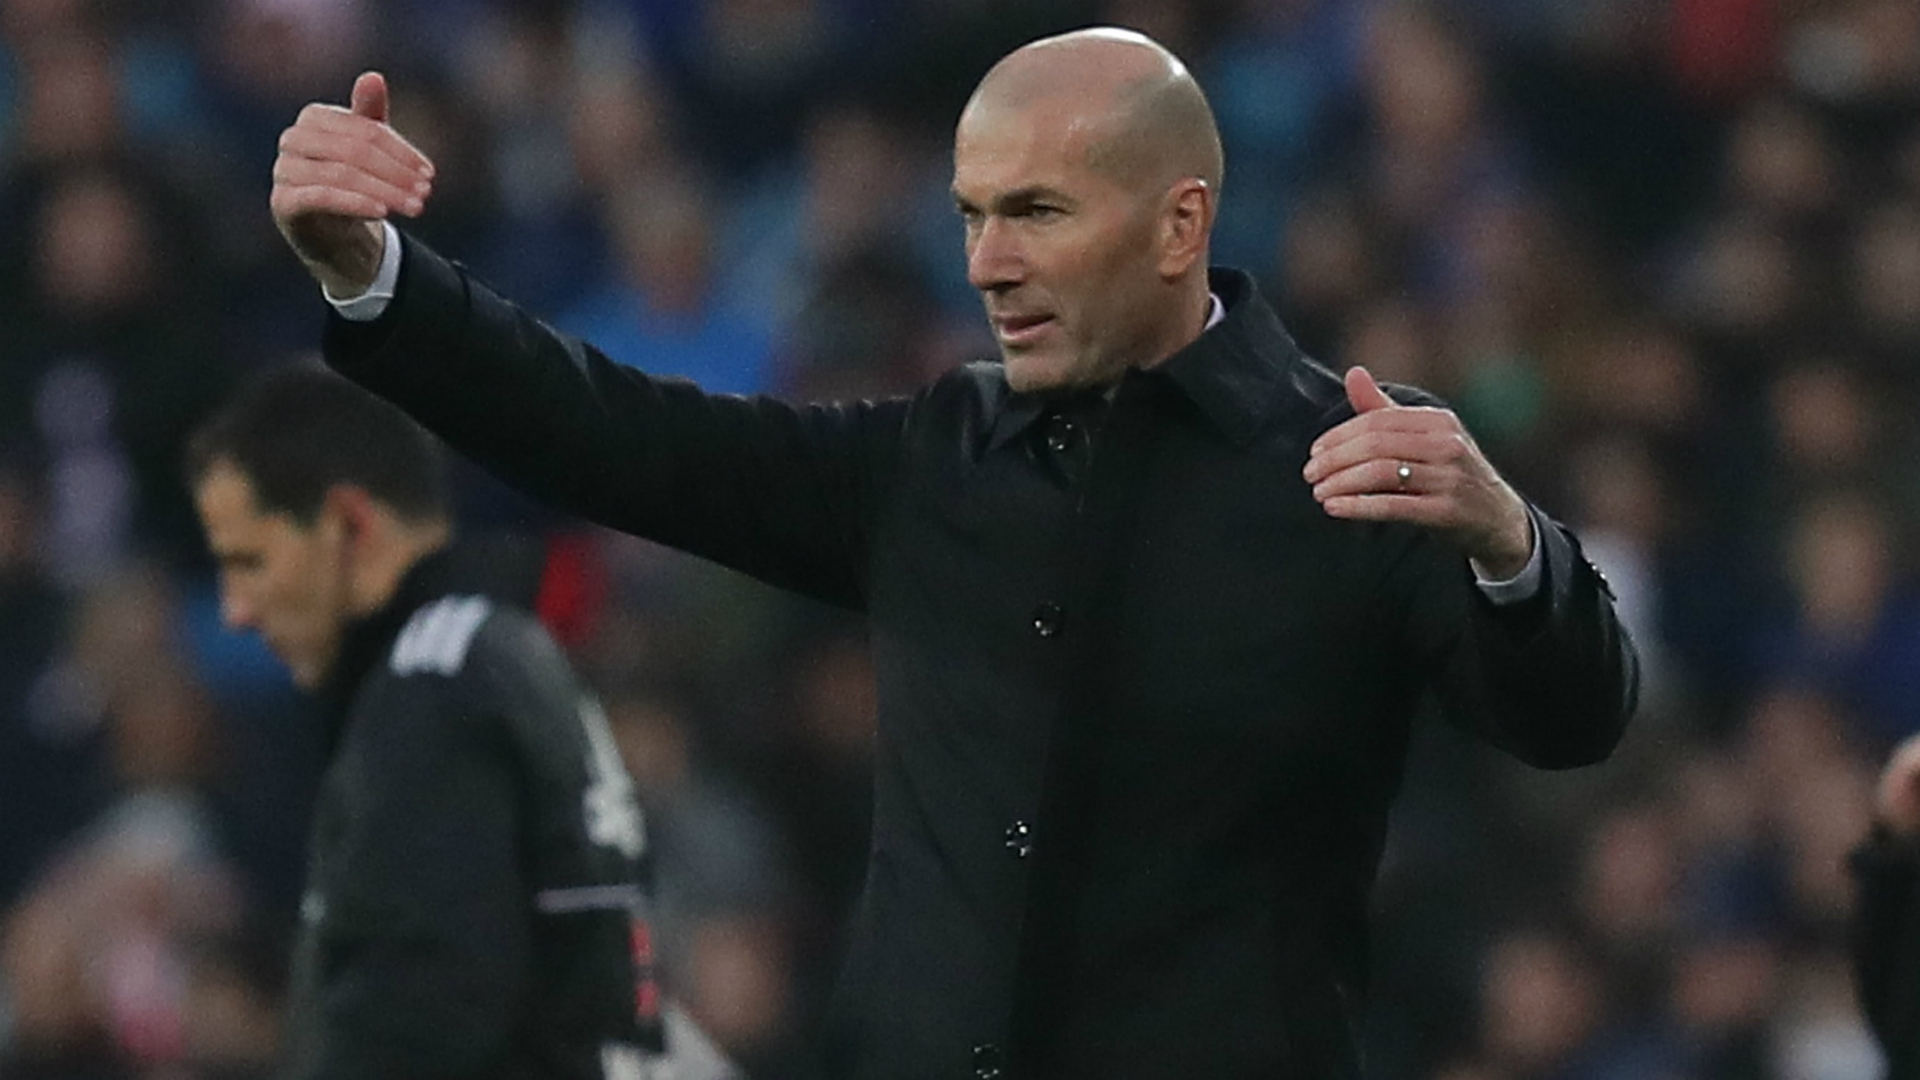 'It's really normal' - Zidane backs VAR over controversial Sevilla disallowed goal v Real Madrid